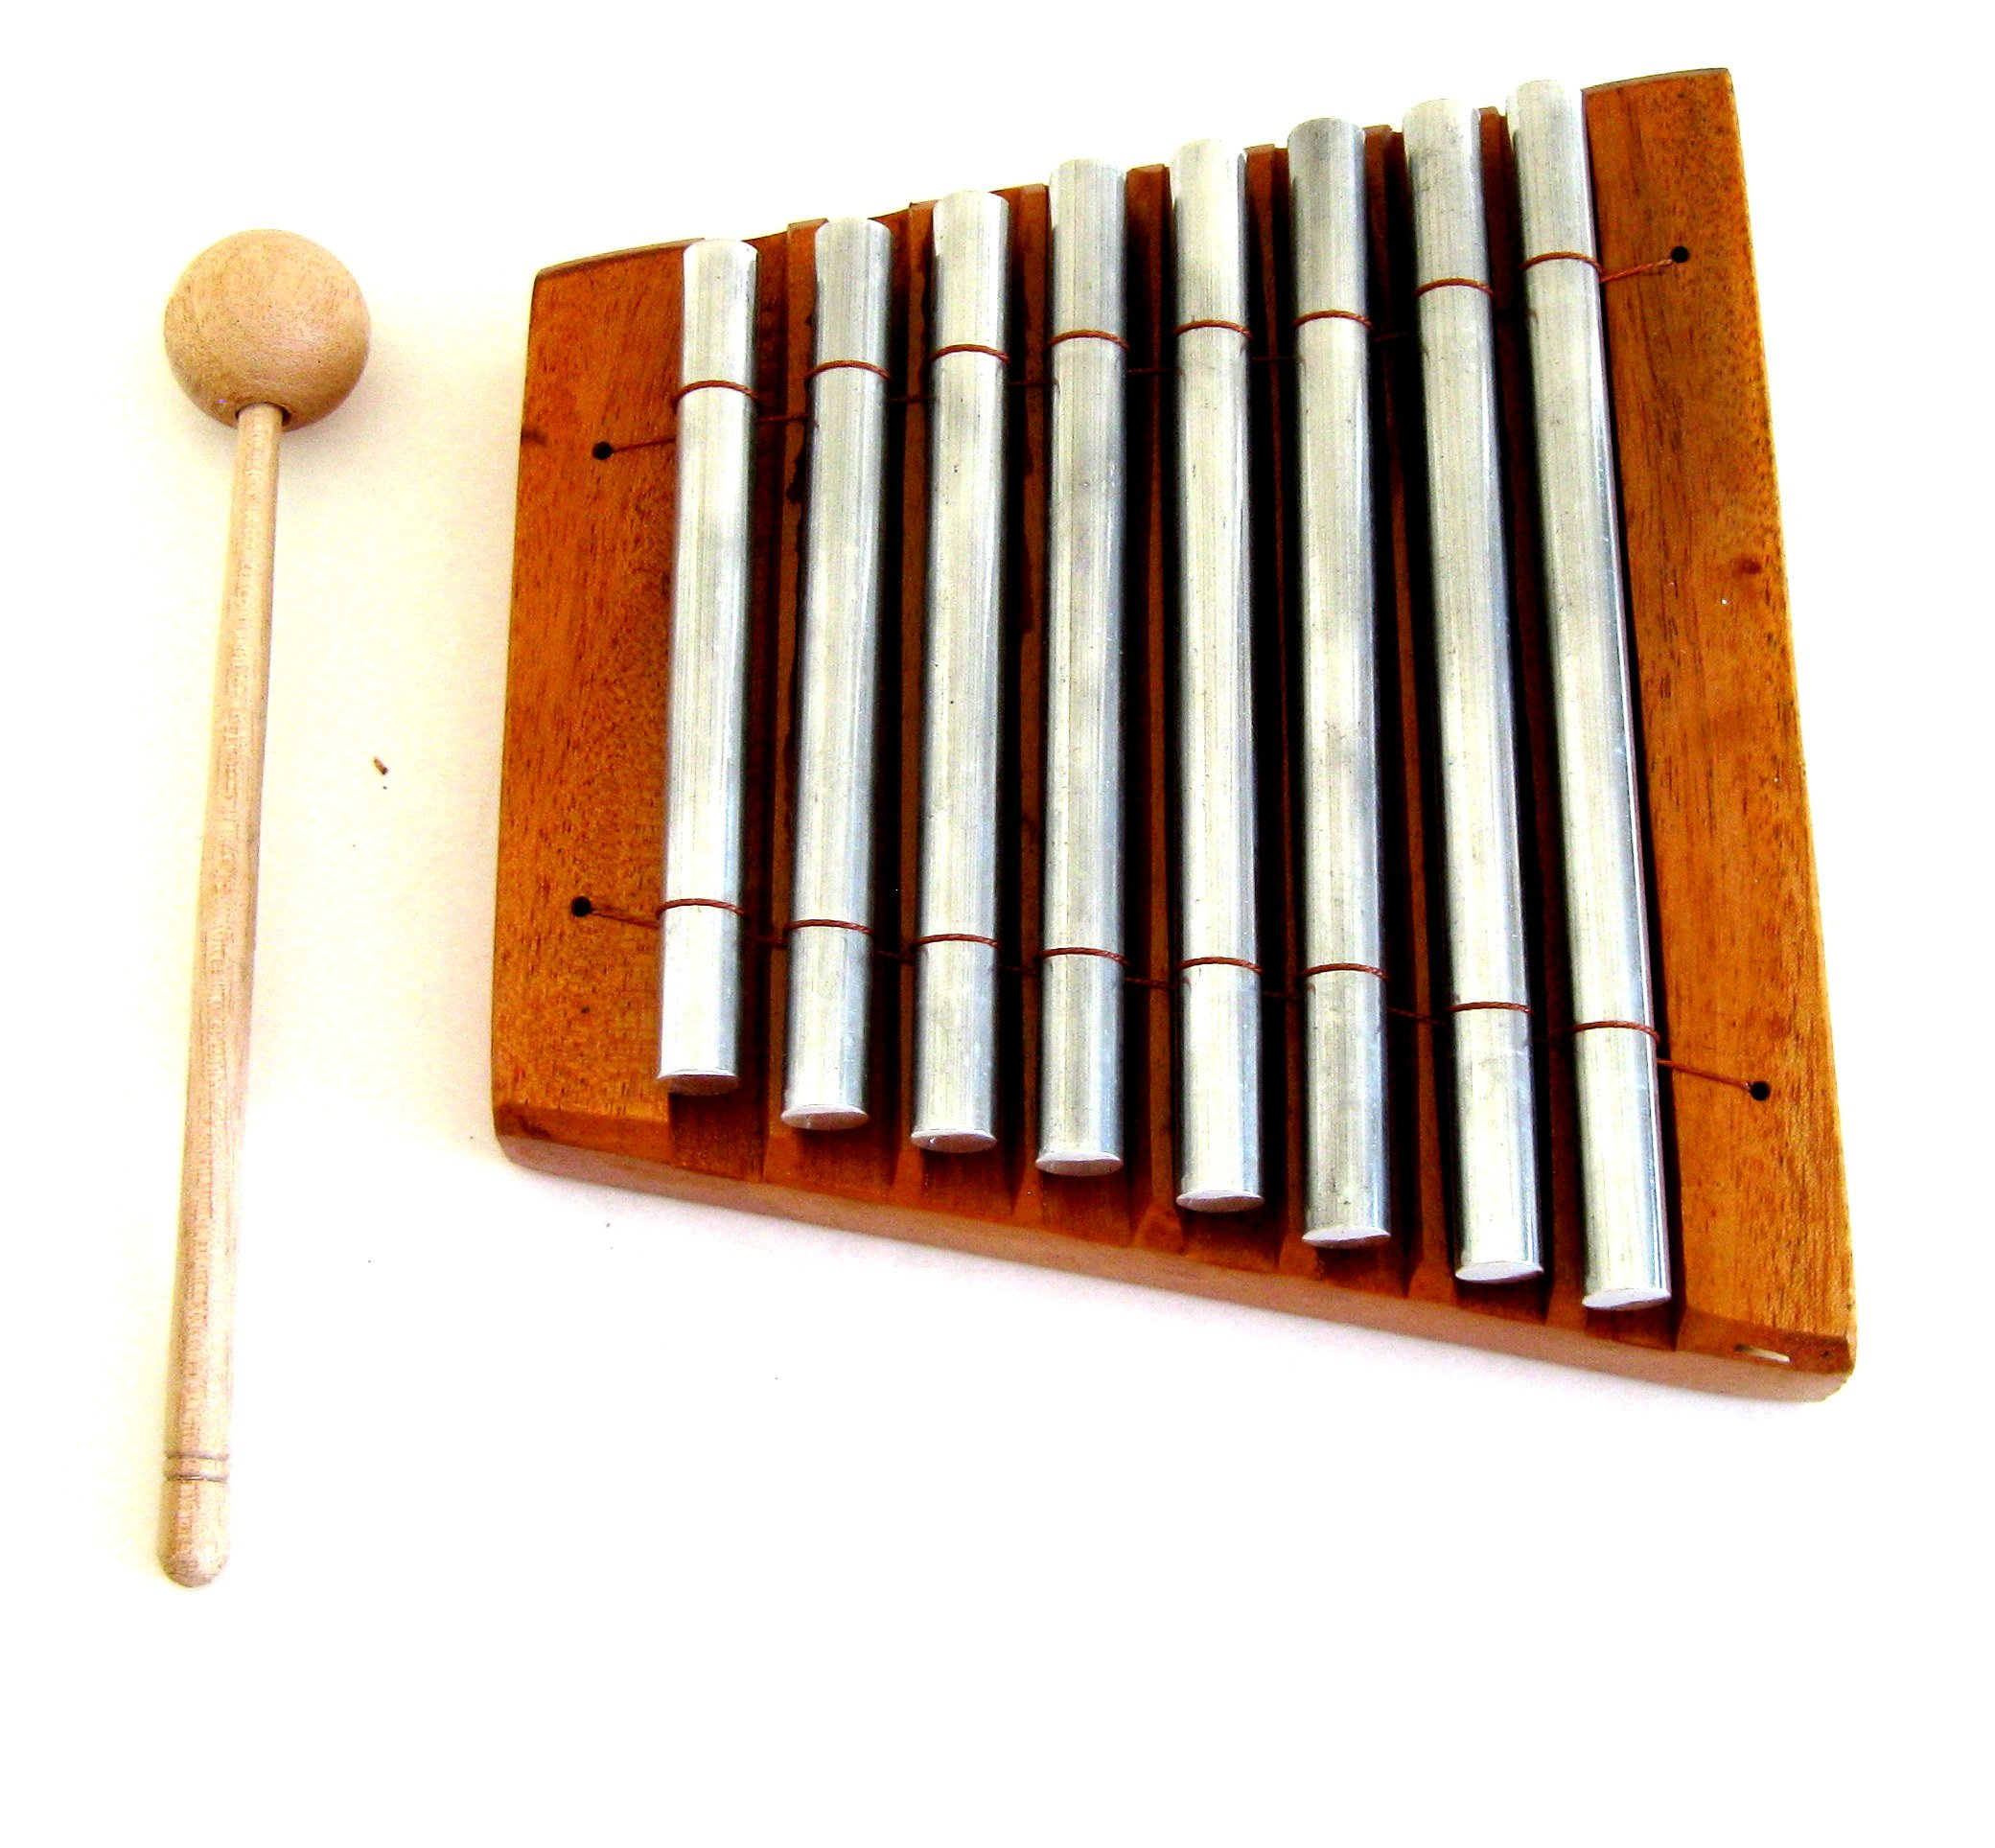 Meditation ZEN Energy Chime Wood Percussion Table Top Chime, 8 Bars - Xylophone - Premium Quality - PROFESSIONAL SOUND- JIVE BRAND